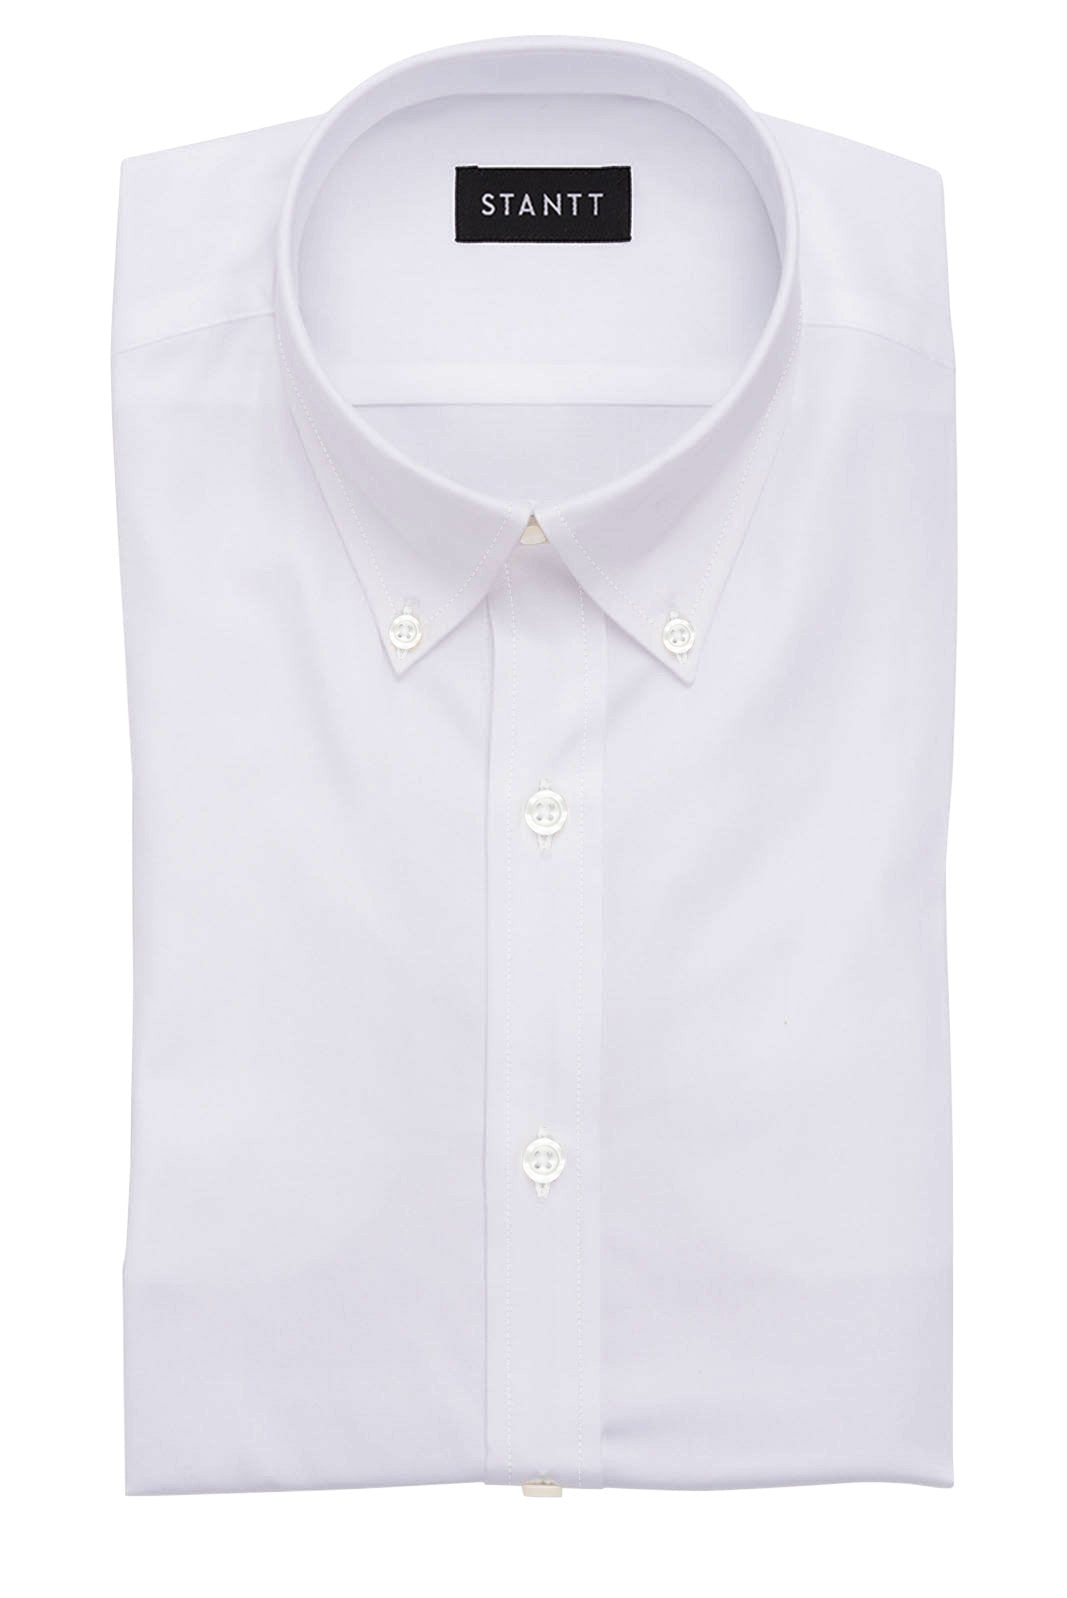 6744caa720 Wrinkle-Resistant White Twill  Button-Down Collar